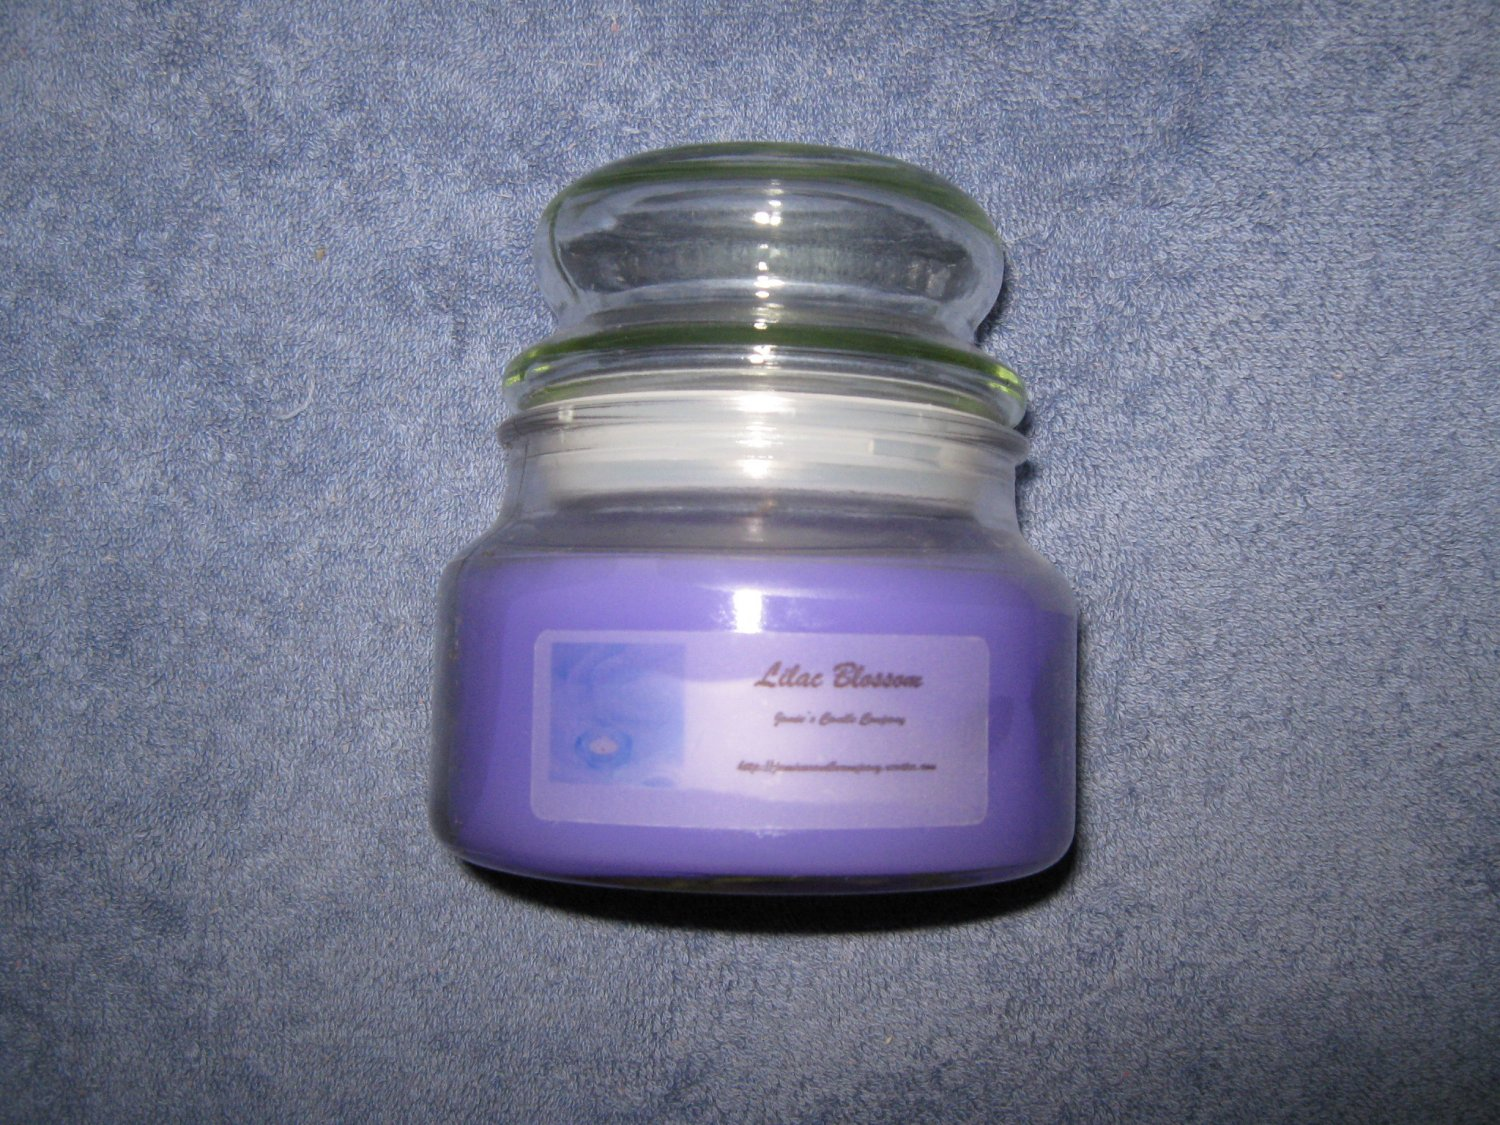 Lilac Blossom 10 Ounce Apothecary Jar Candle